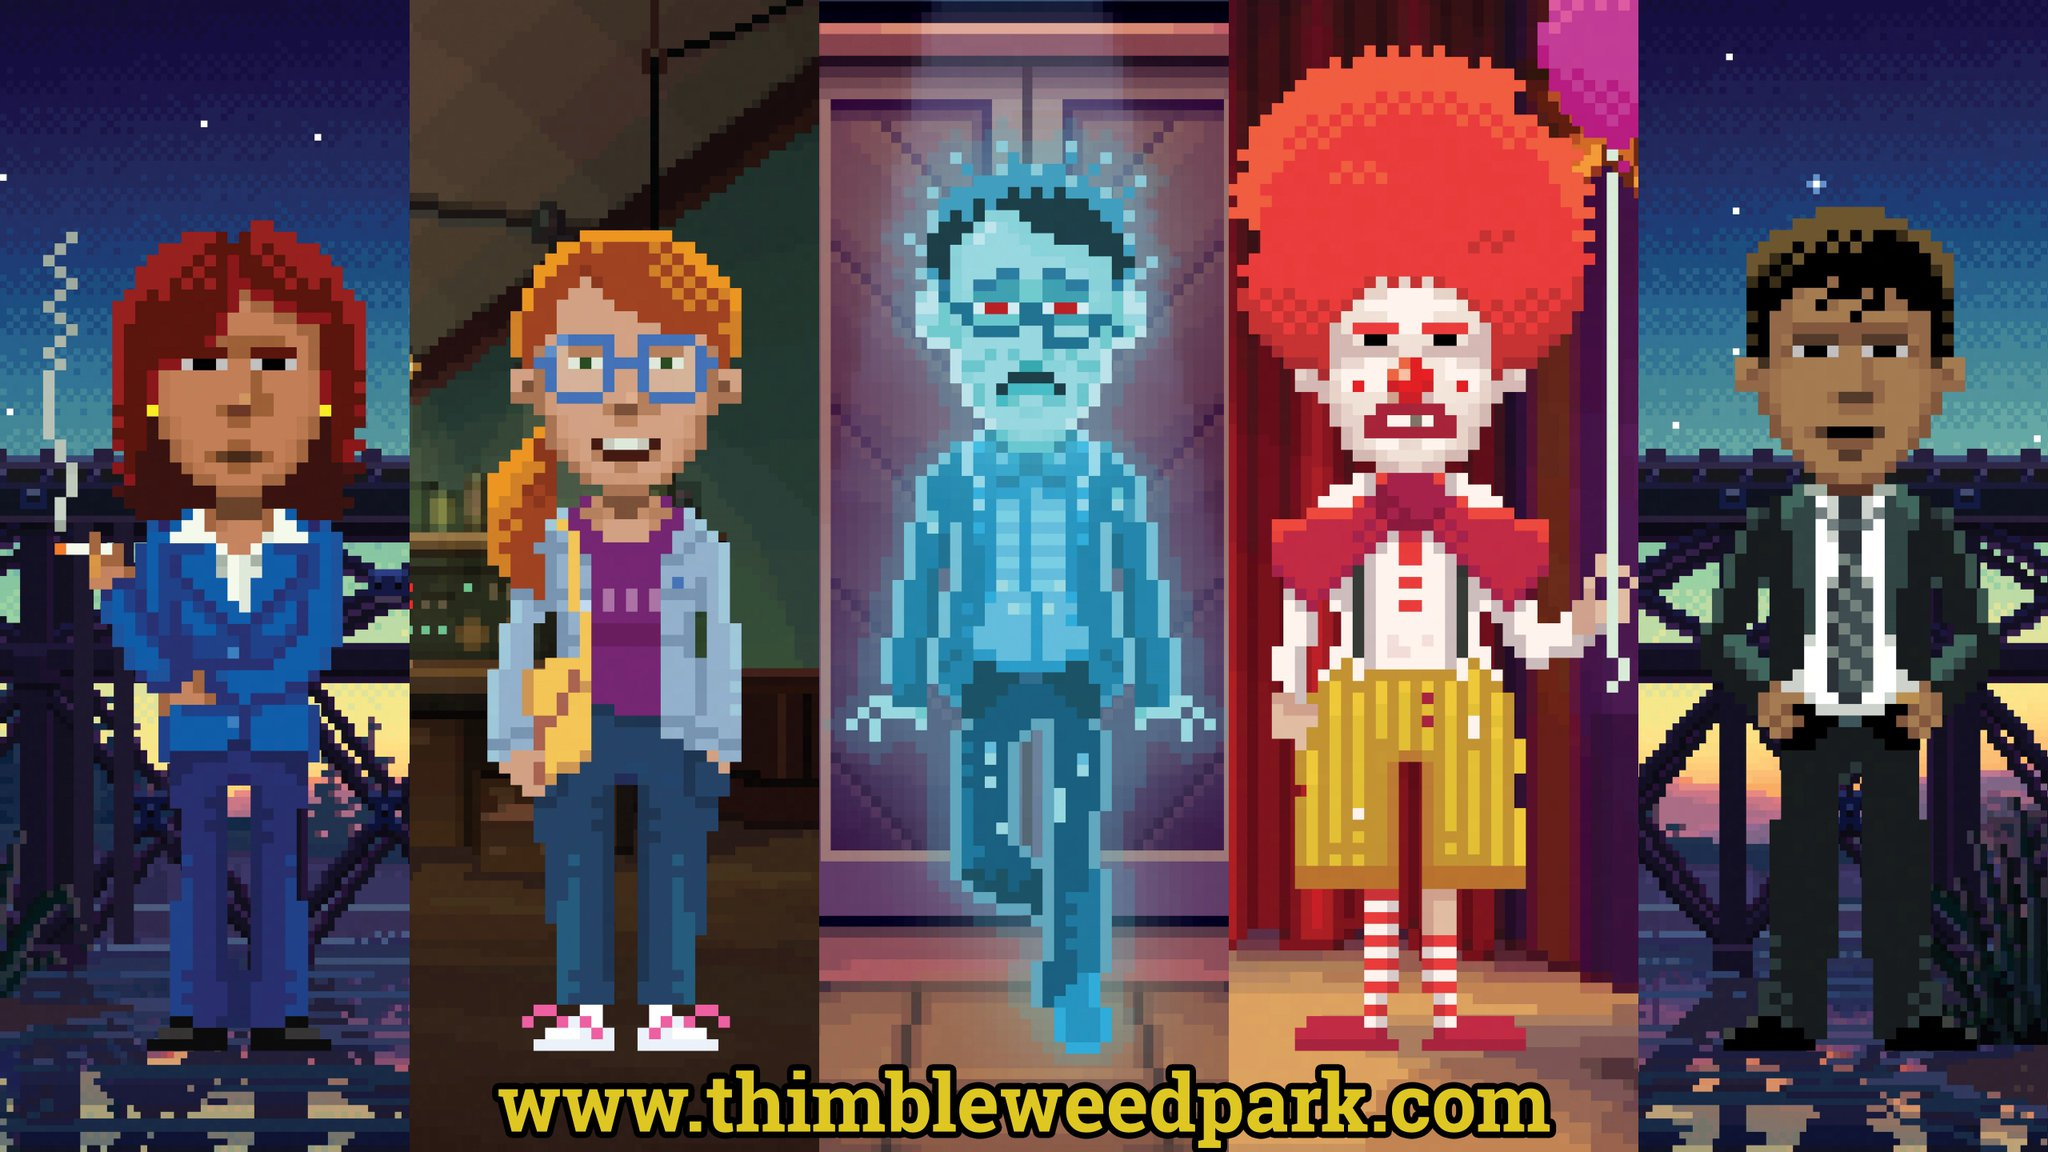 Thimbleweed Park [PC PS4 XONE SWITCH iOS ANDROID] CgfNiDaXIAE1M6a